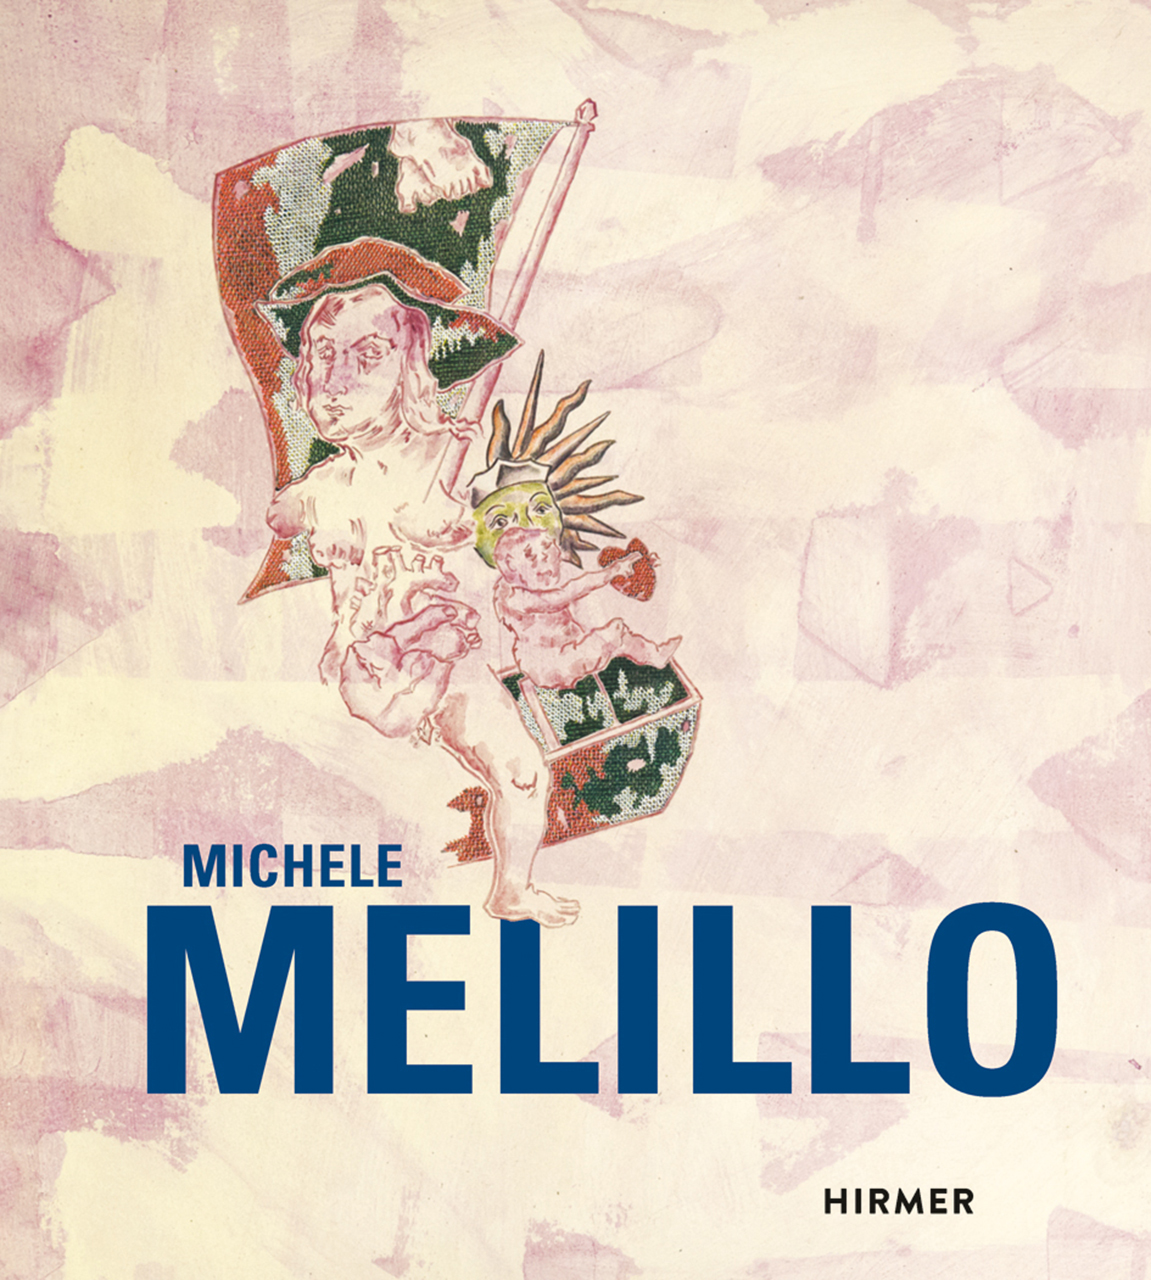 Michele Melillo